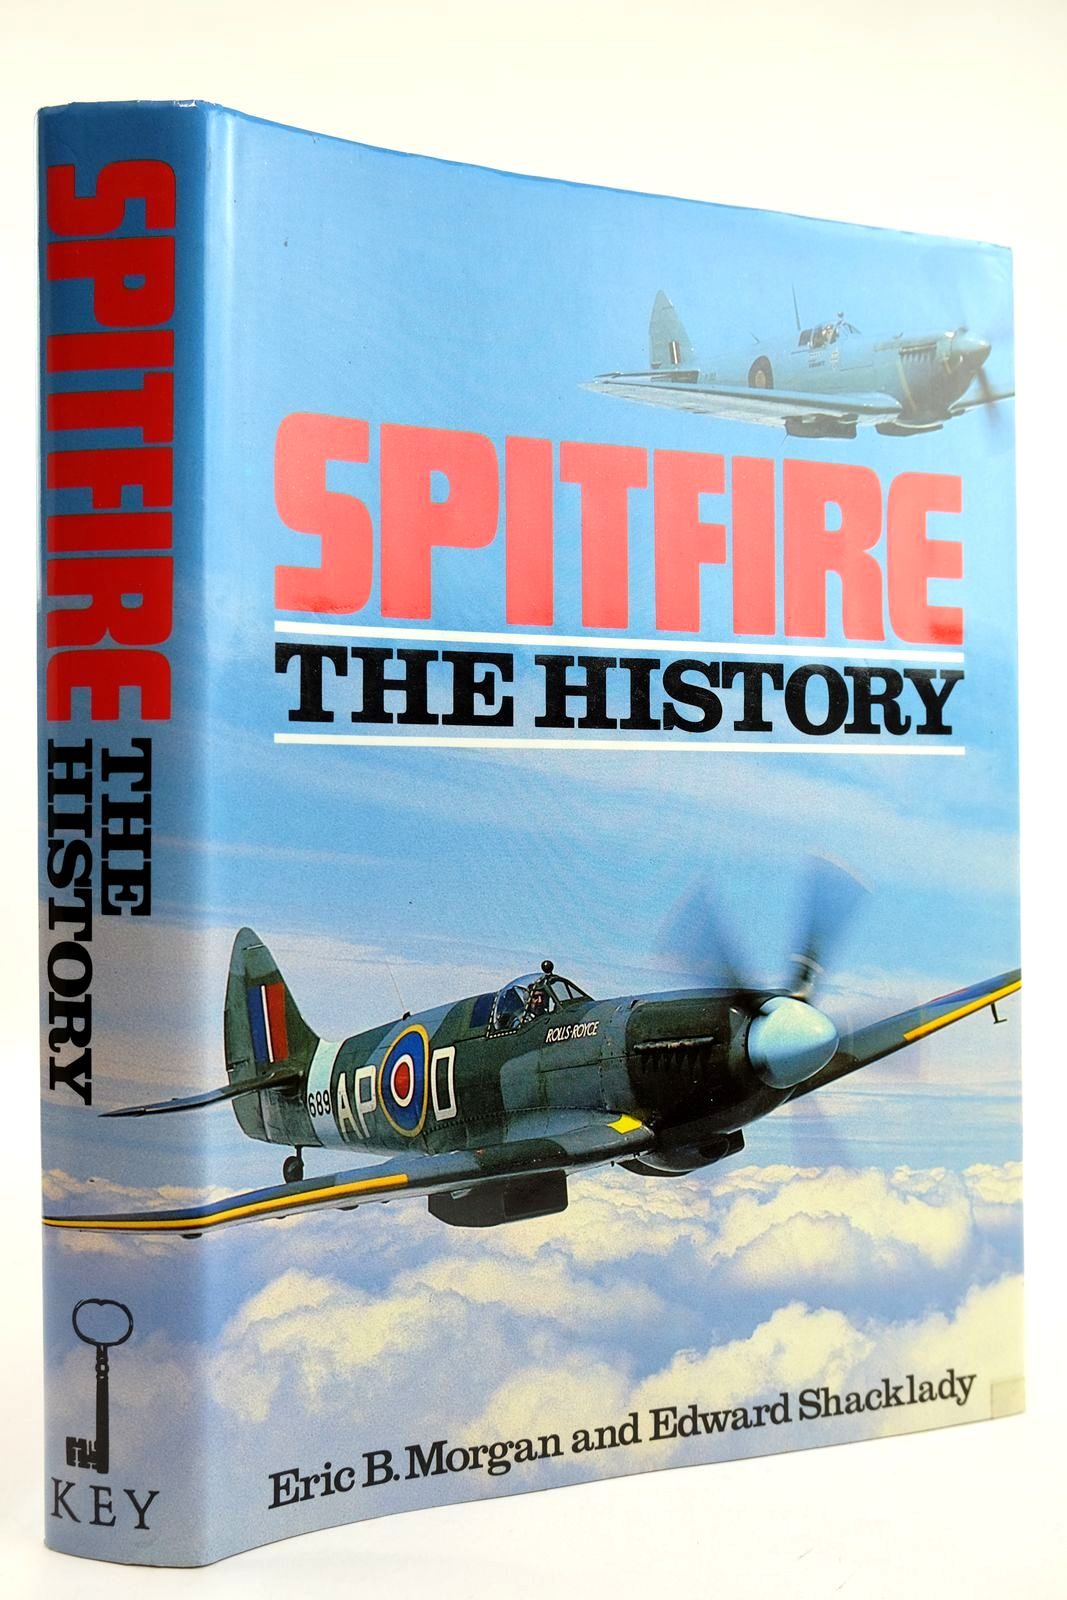 Photo of SPITFIRE THE HISTORY written by Morgan, Eric B. Shacklady, Edward published by Key Publishing (STOCK CODE: 2132096)  for sale by Stella & Rose's Books